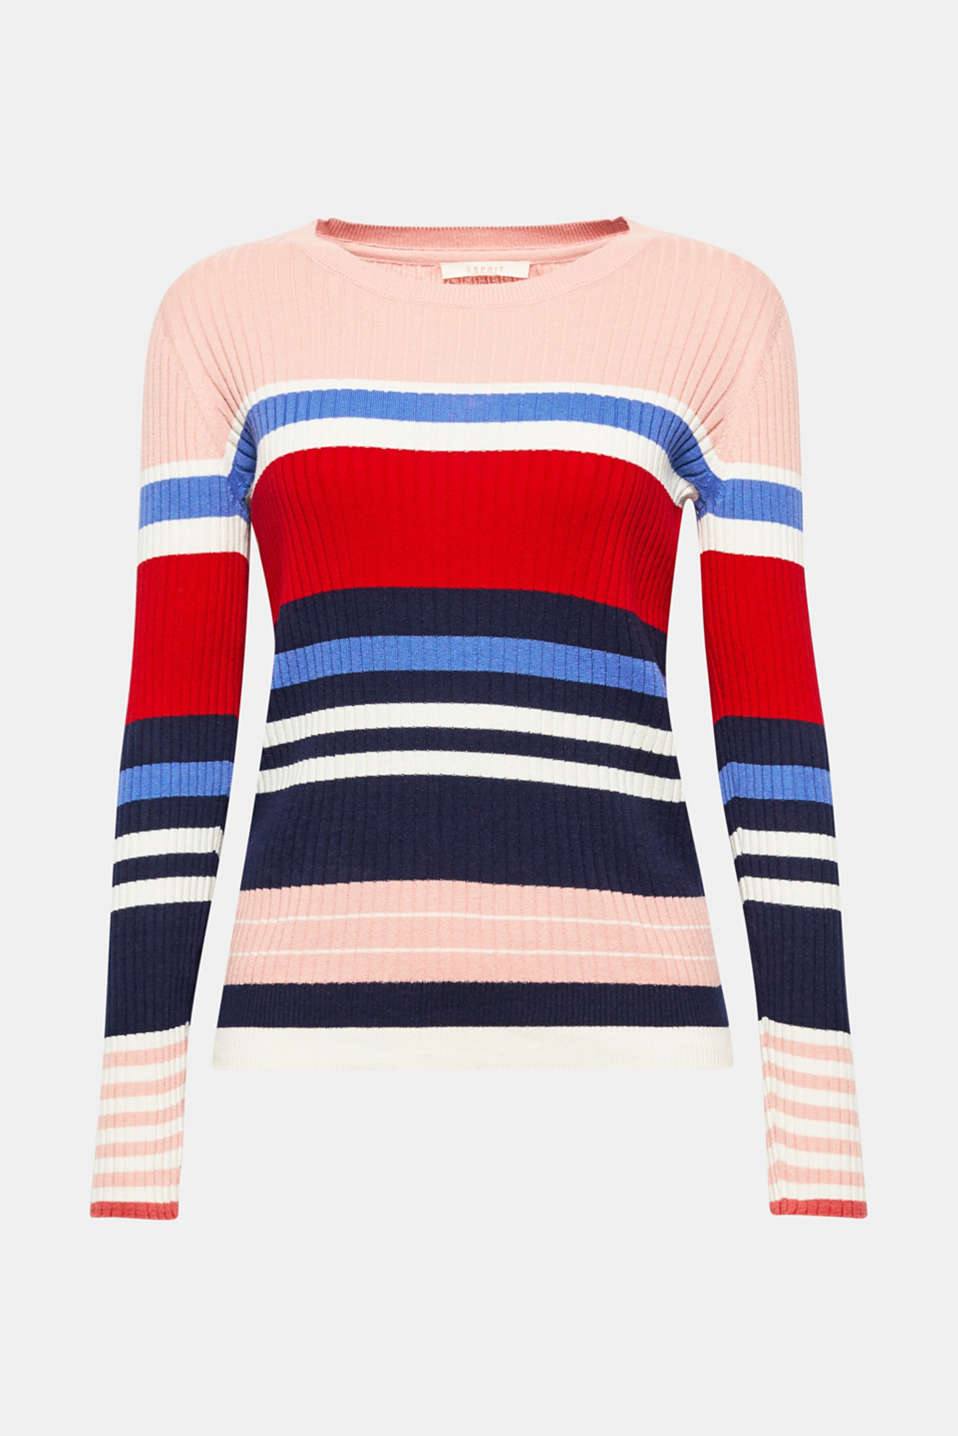 Clings to the body, wonderfully soft with colourful stripes: lightweight cotton jumper